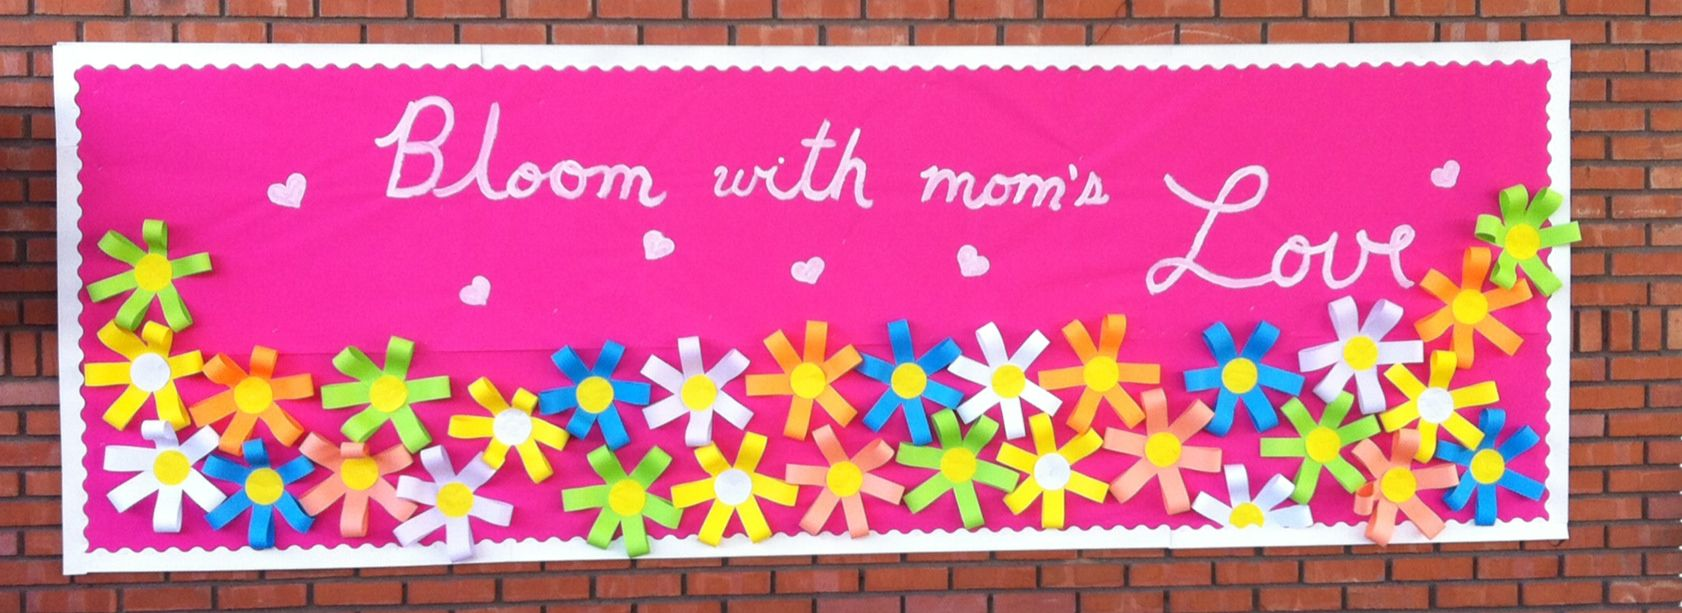 Mother S Day Classroom Decoration Ideas : Mother s day bulletin board school stuff pinterest